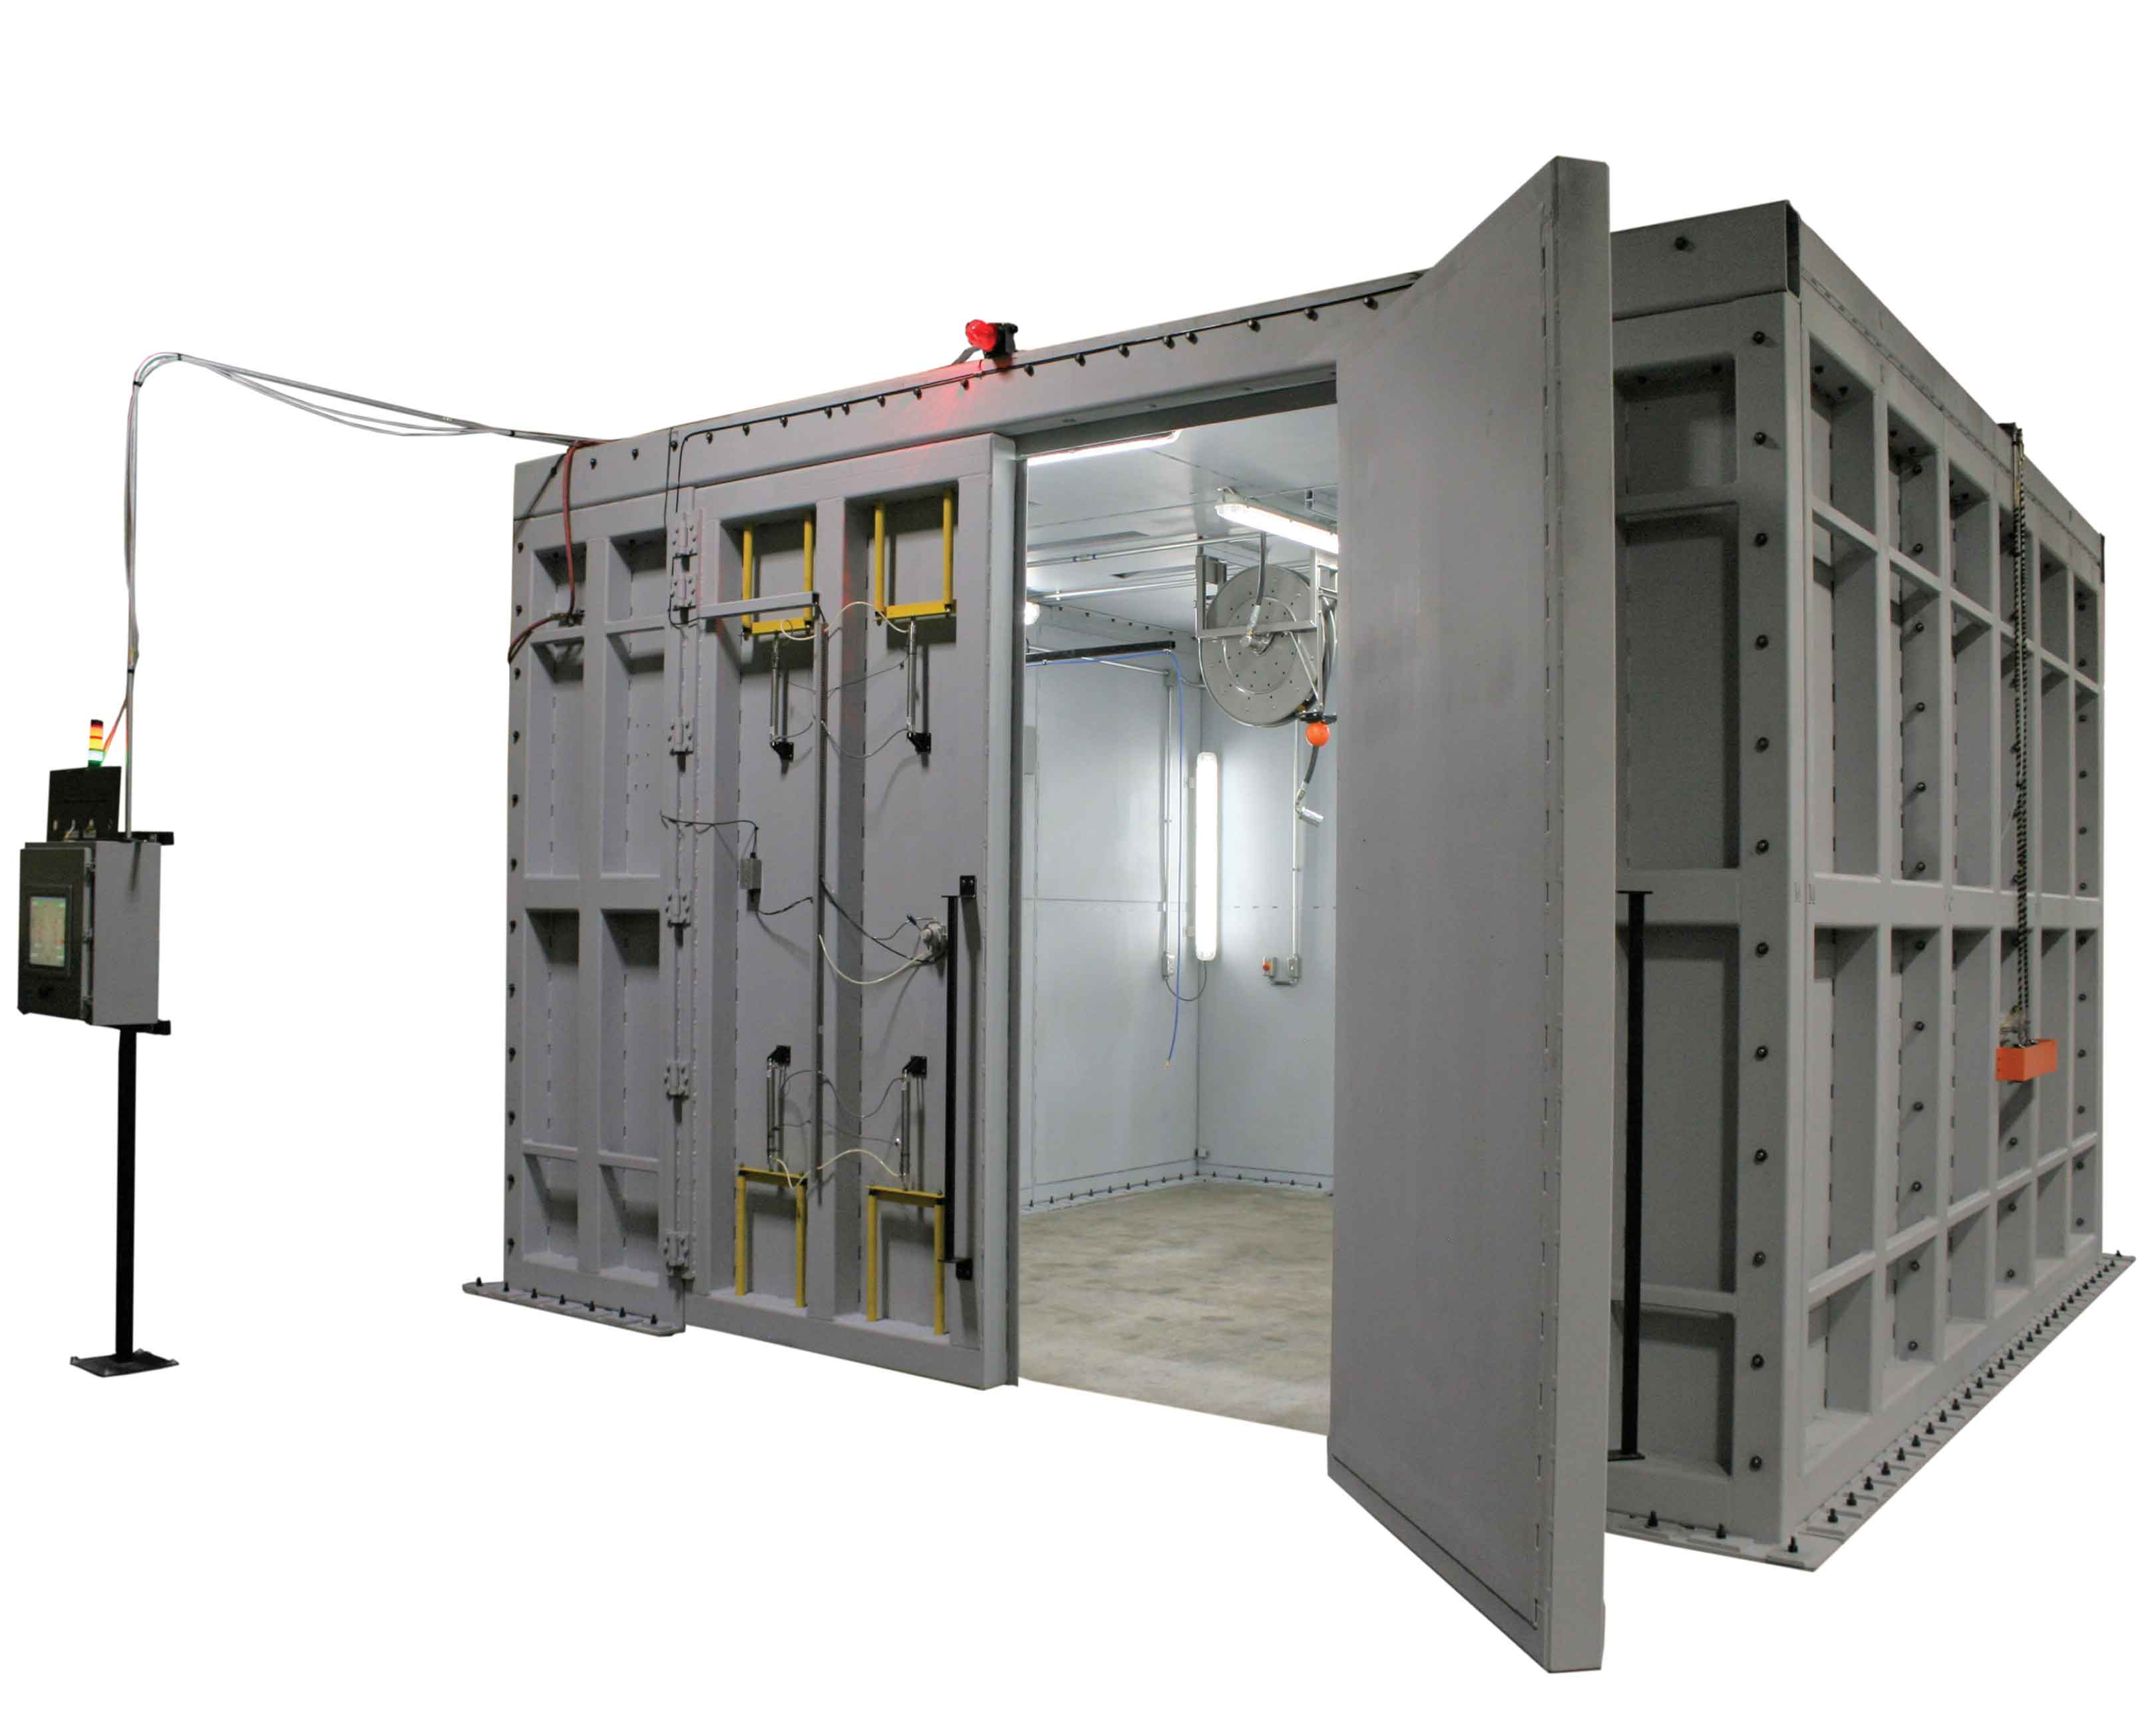 VTI's Chiller Proof Booth for Chiller Sub Assembly Manufacturing